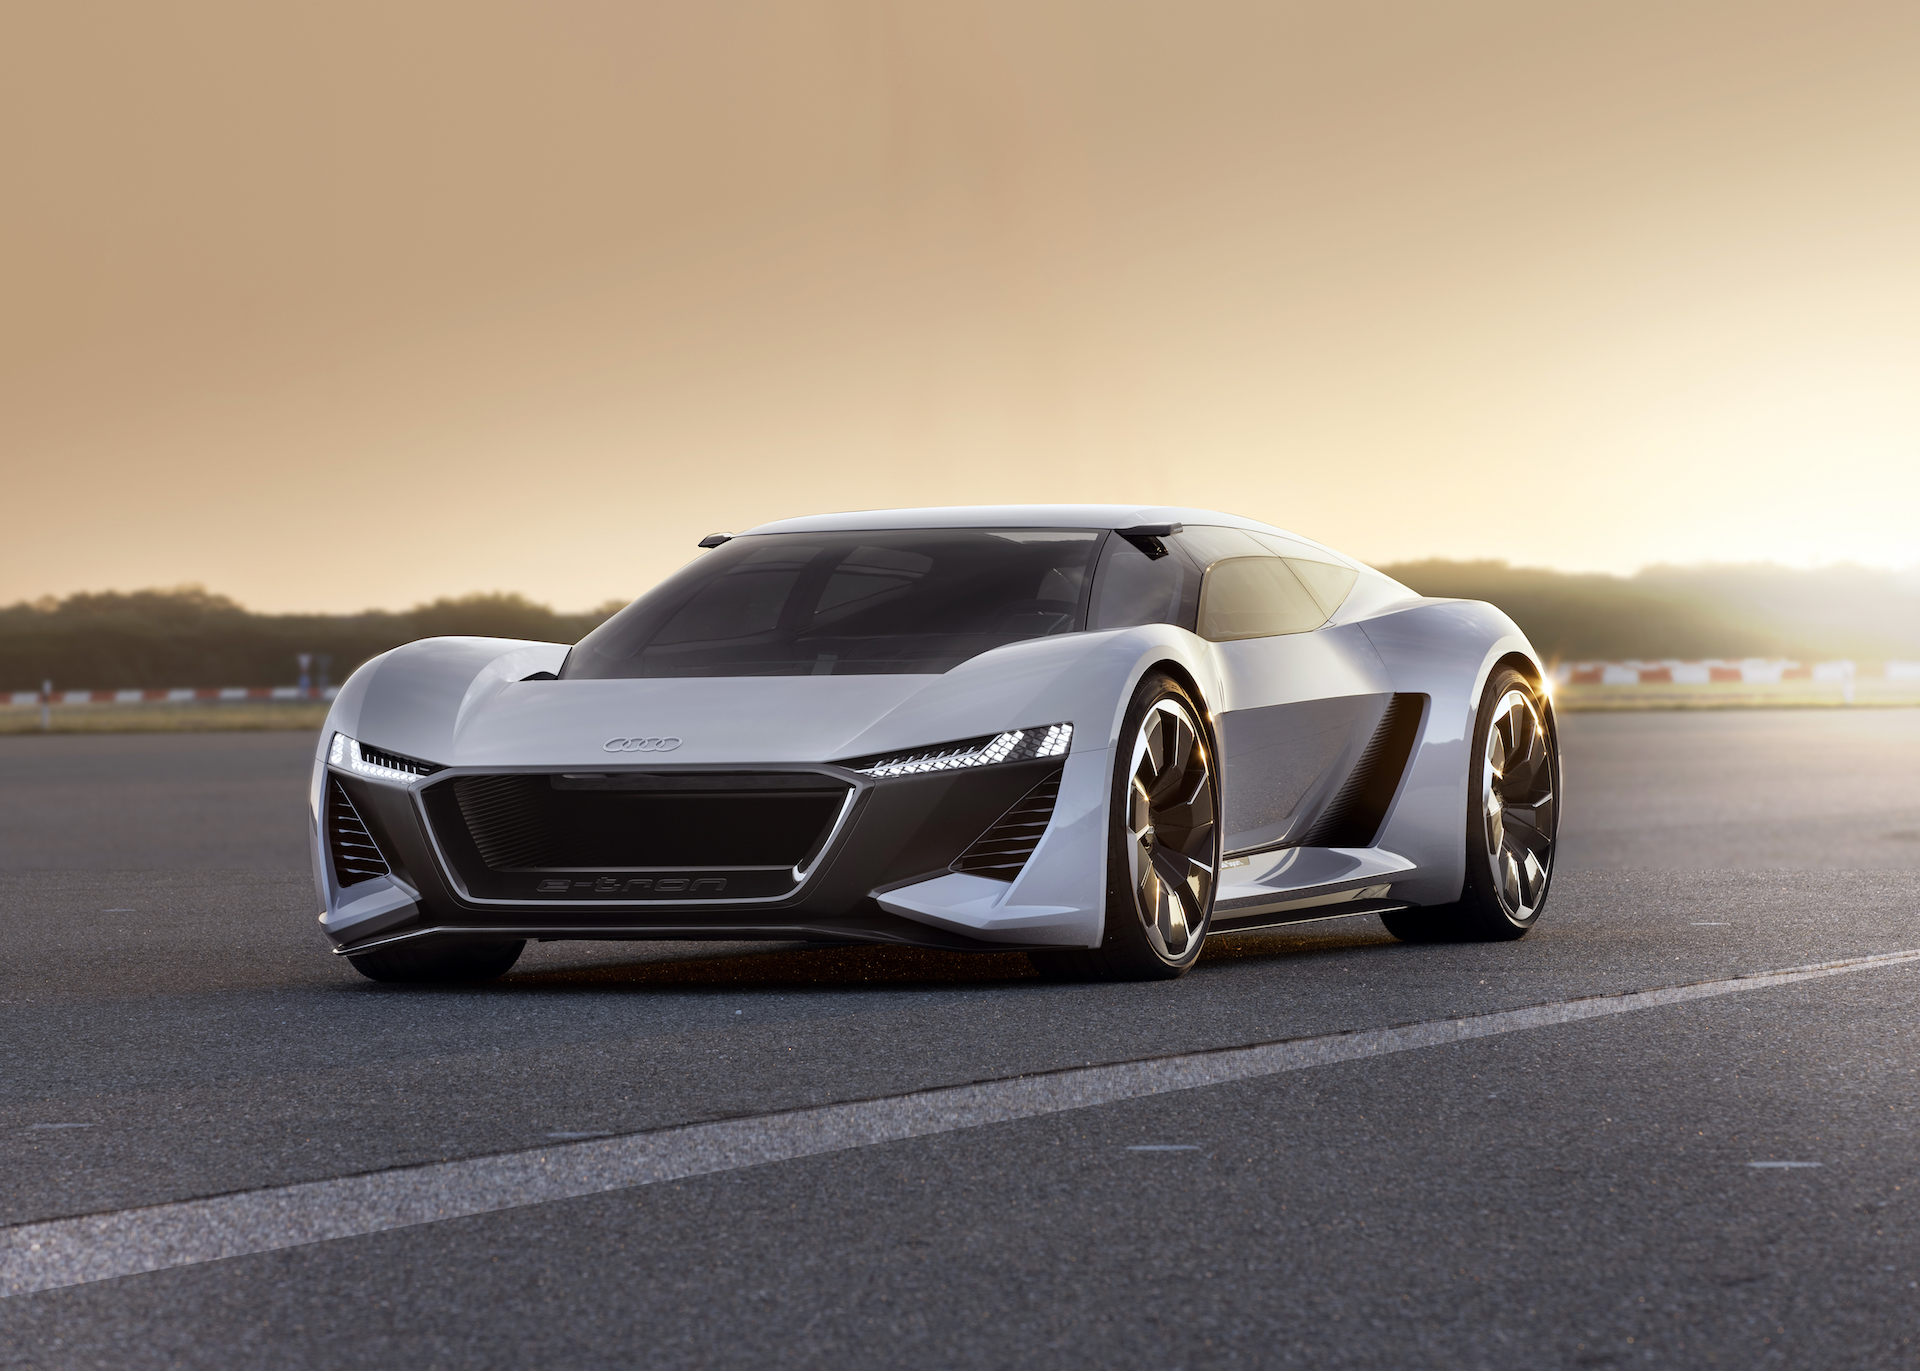 Audi Pb18 E Tron Combines Le Mans Prowess With Electric Future